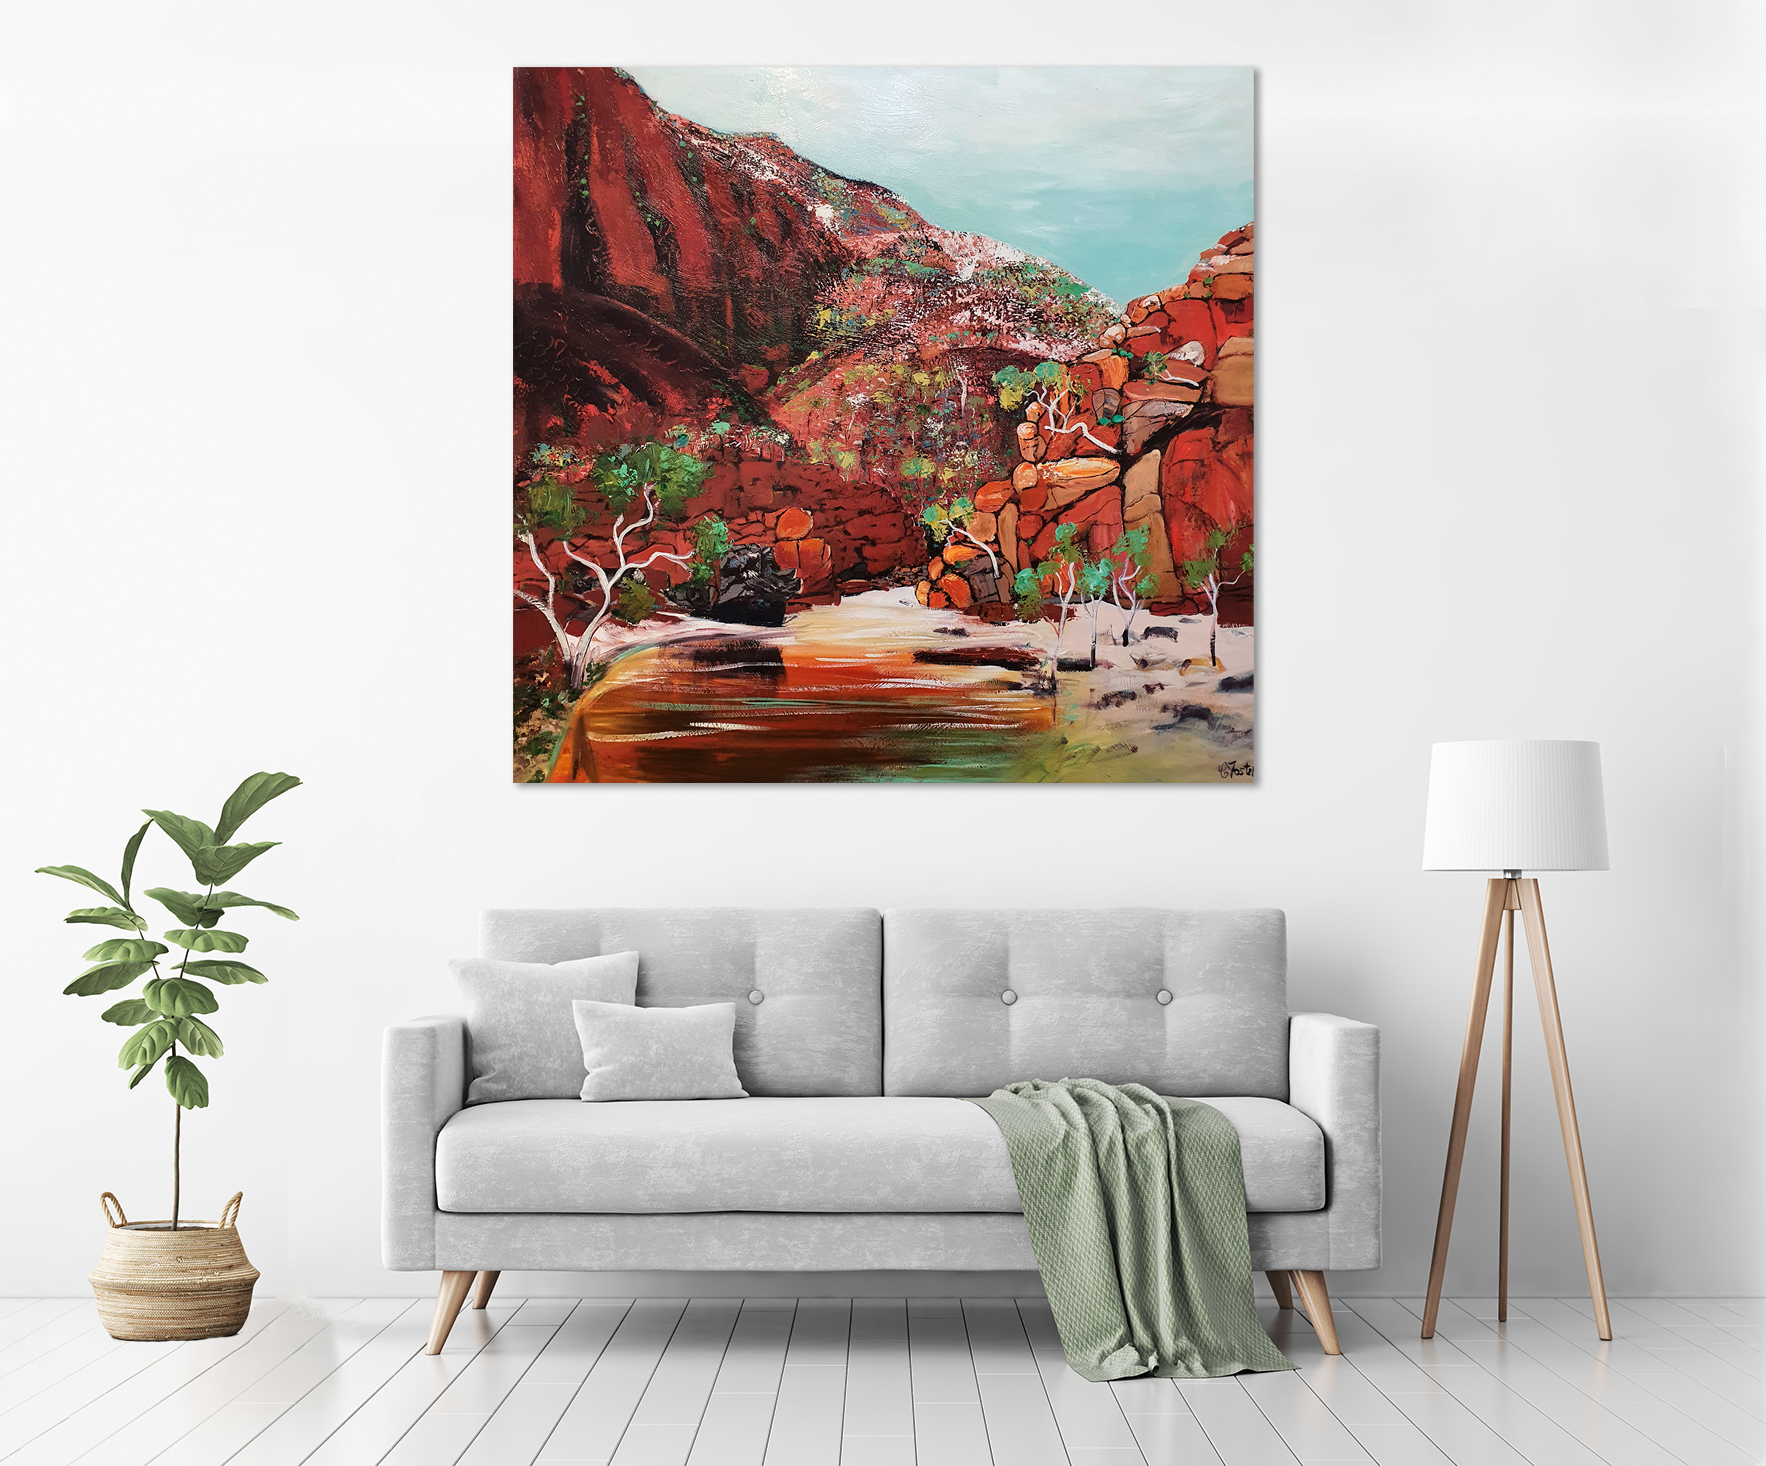 Ormiston Gorge in a room